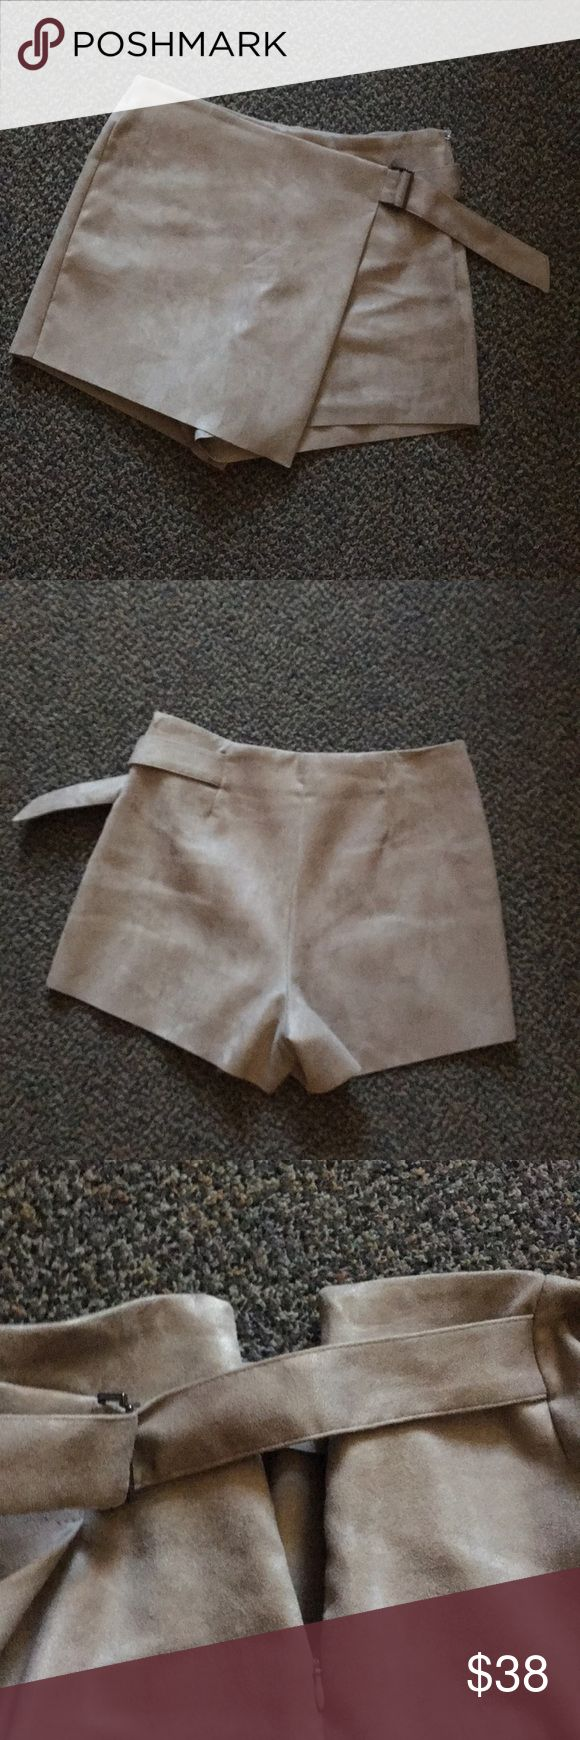 Beige Shorts Perfect condition suede beige shorts with asymmetric looking skirt front and belted, so cute, only worn once Zara Shorts Skorts